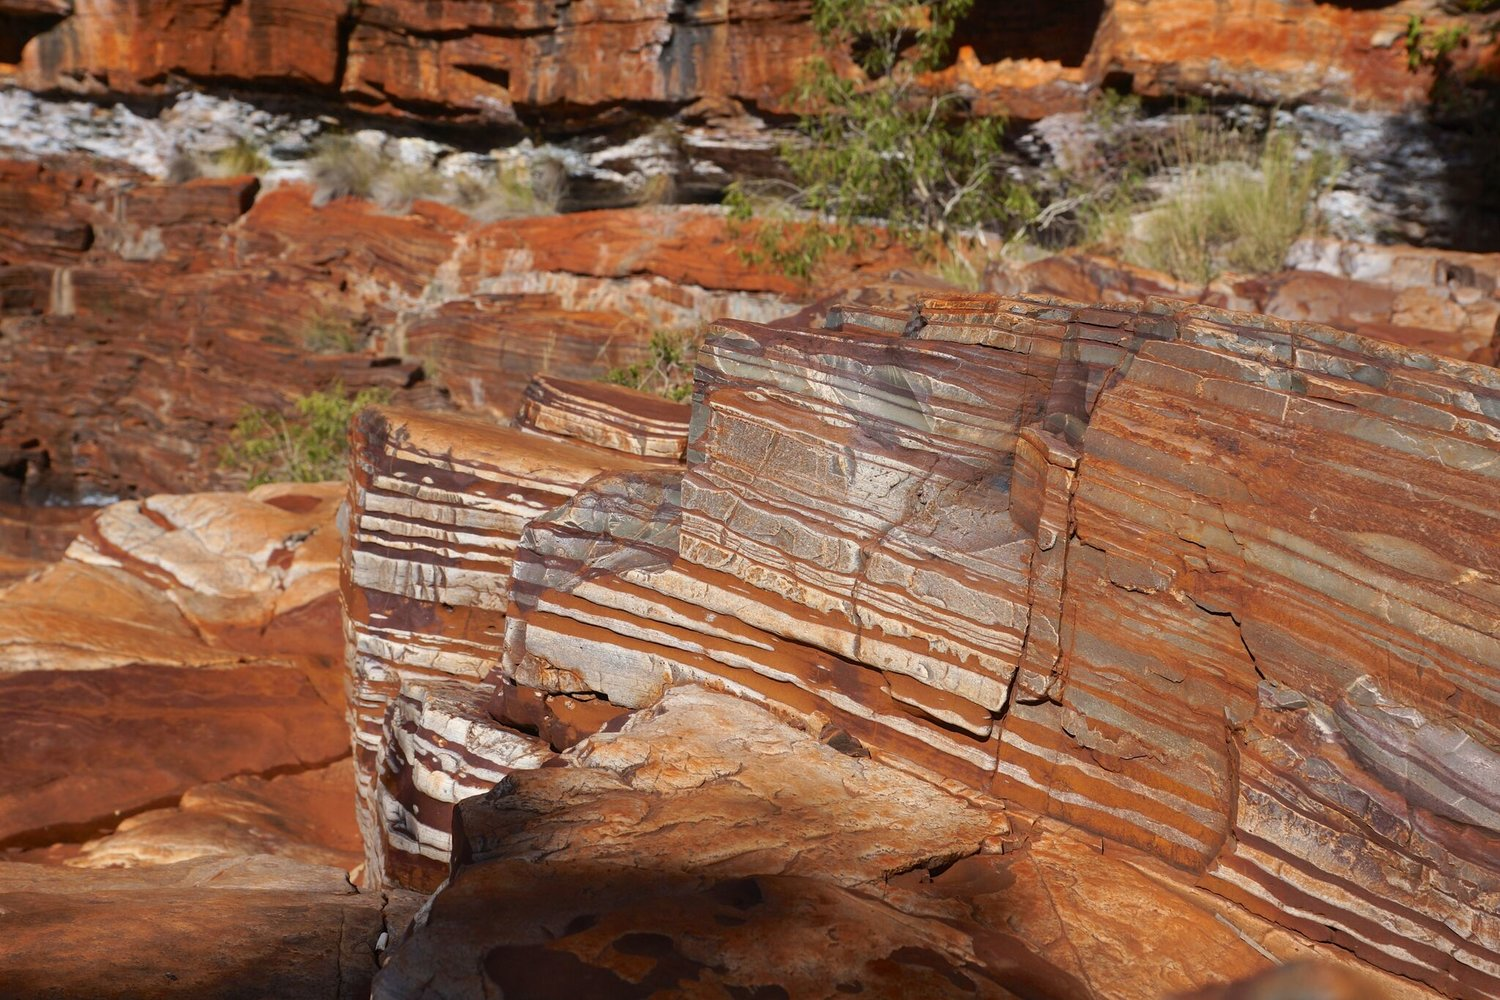 Banded Iron Formations hold clues to the earliest rise of oxygen on Earth